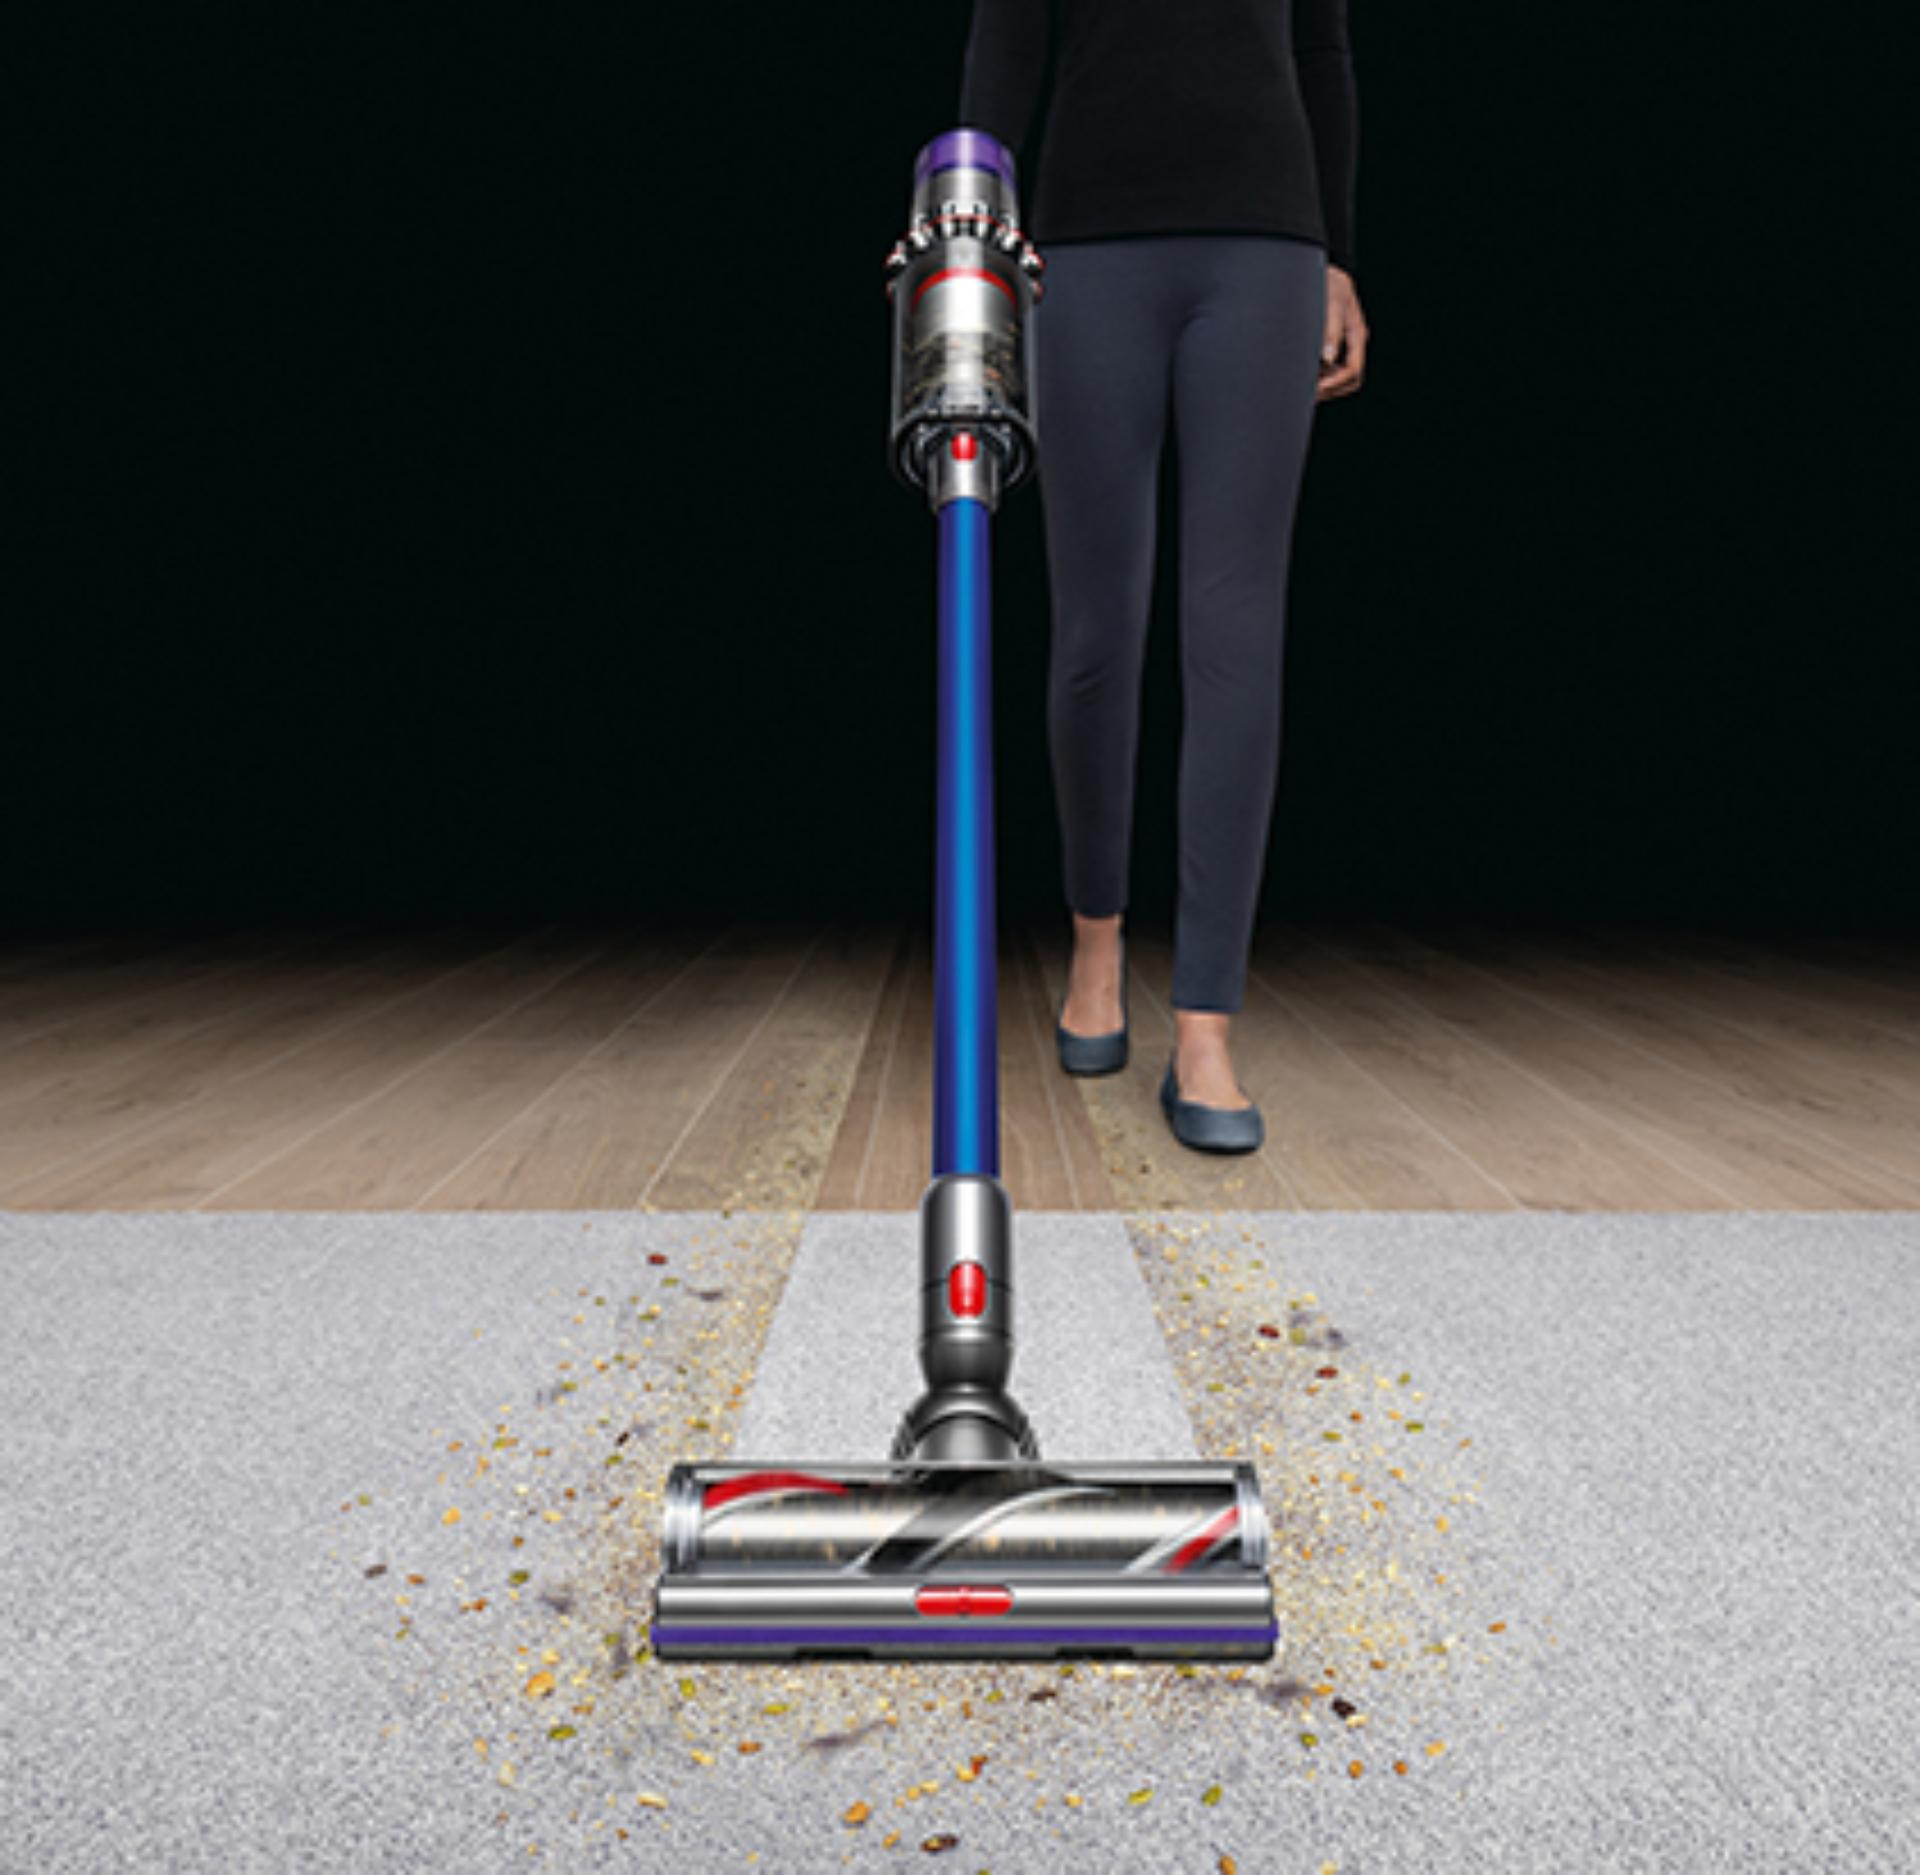 Dyson vacuum cleaner cleaning carpet